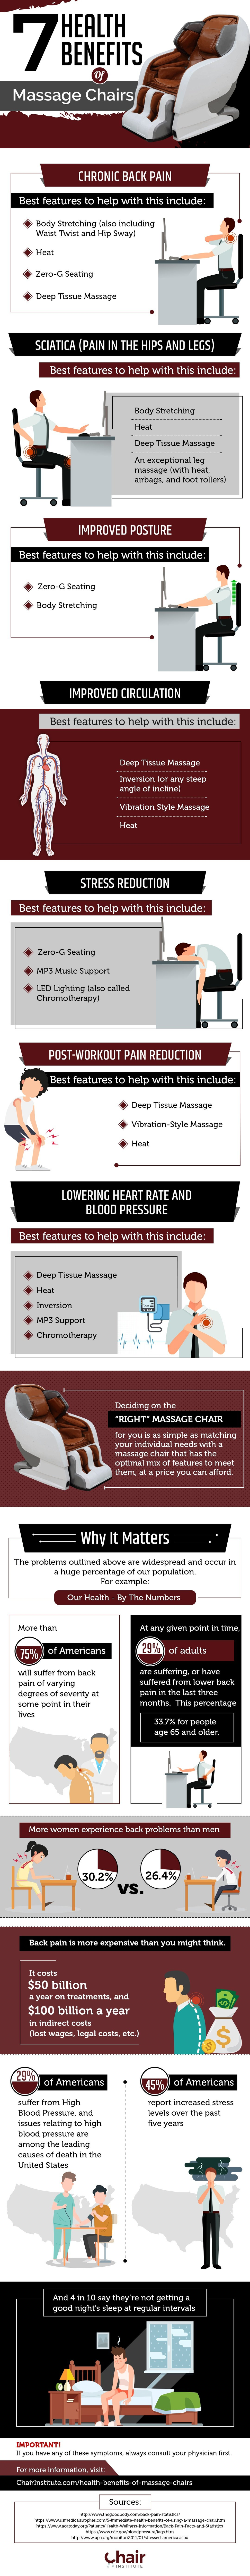 Infographic about the Health Benefits of Massage Chairs, by ChairInstitute.com